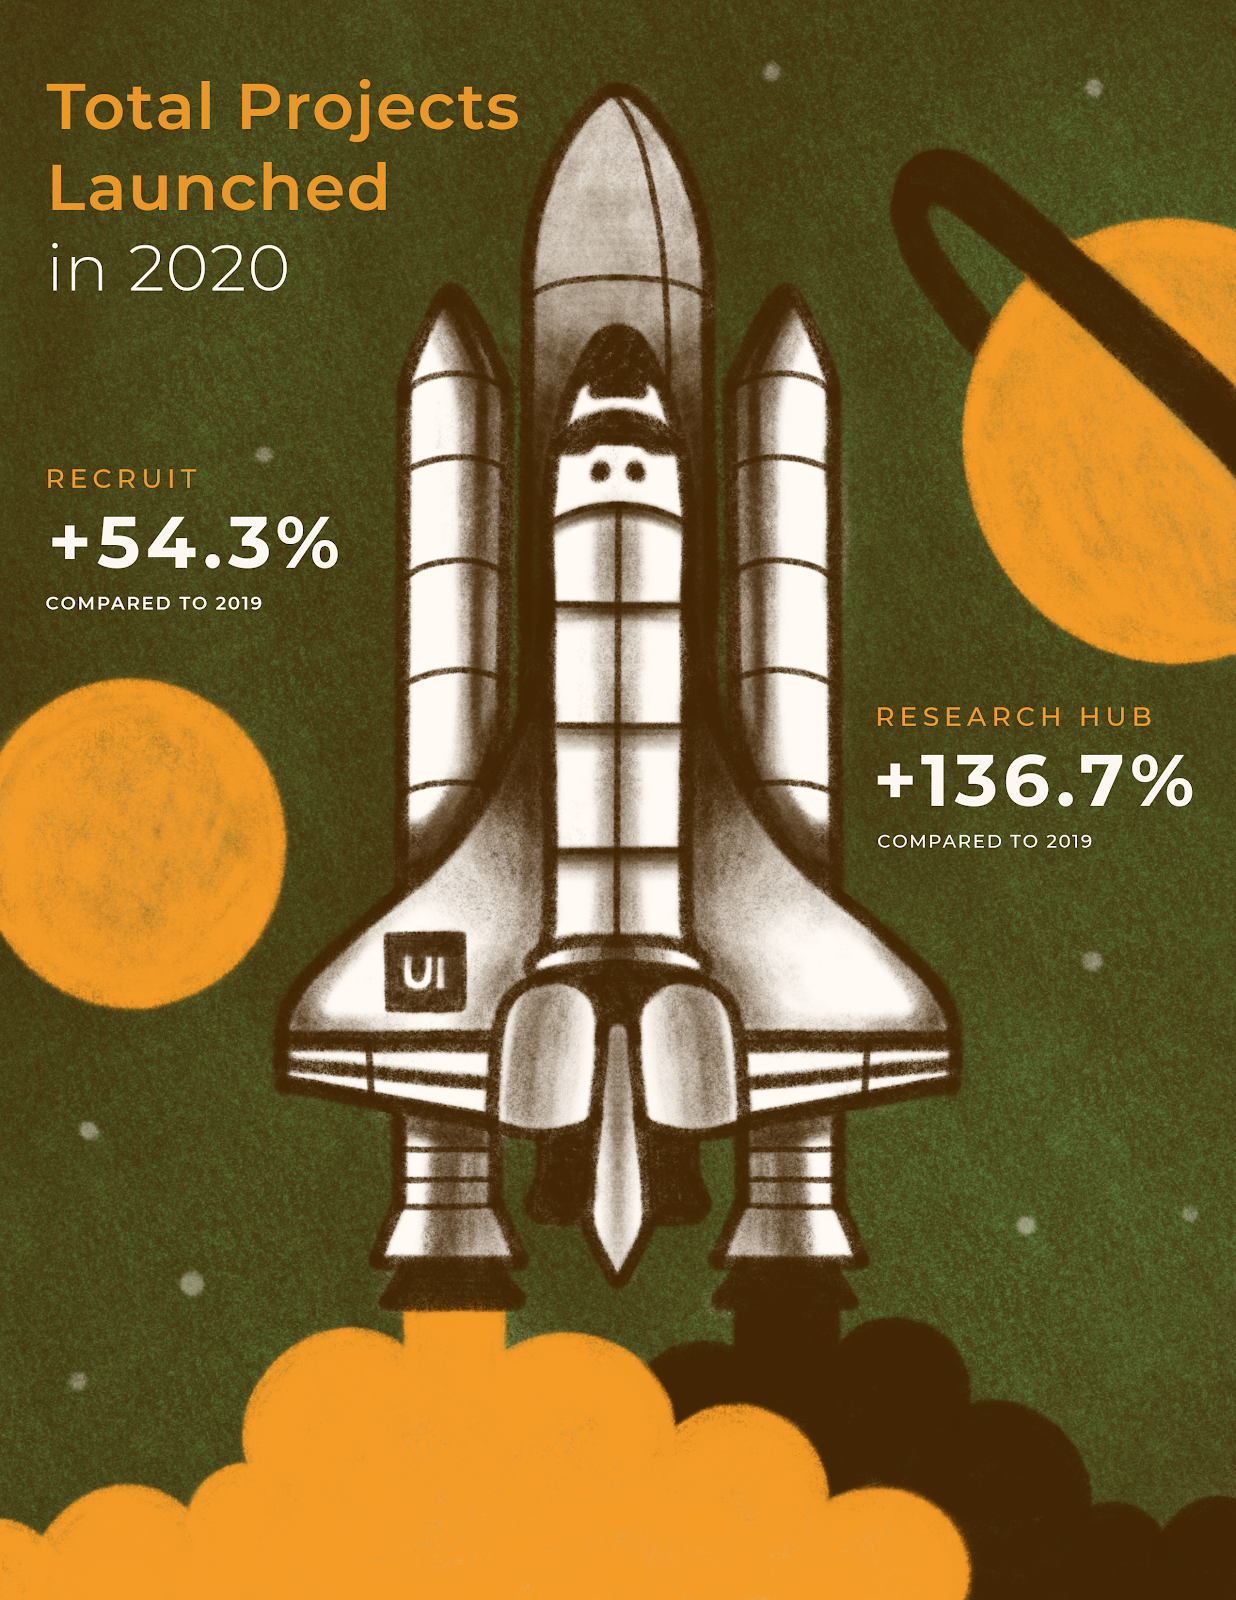 Alt text: Rocket ship taking off. Total User Interviews projects launched stats comparing 2019 and 2020